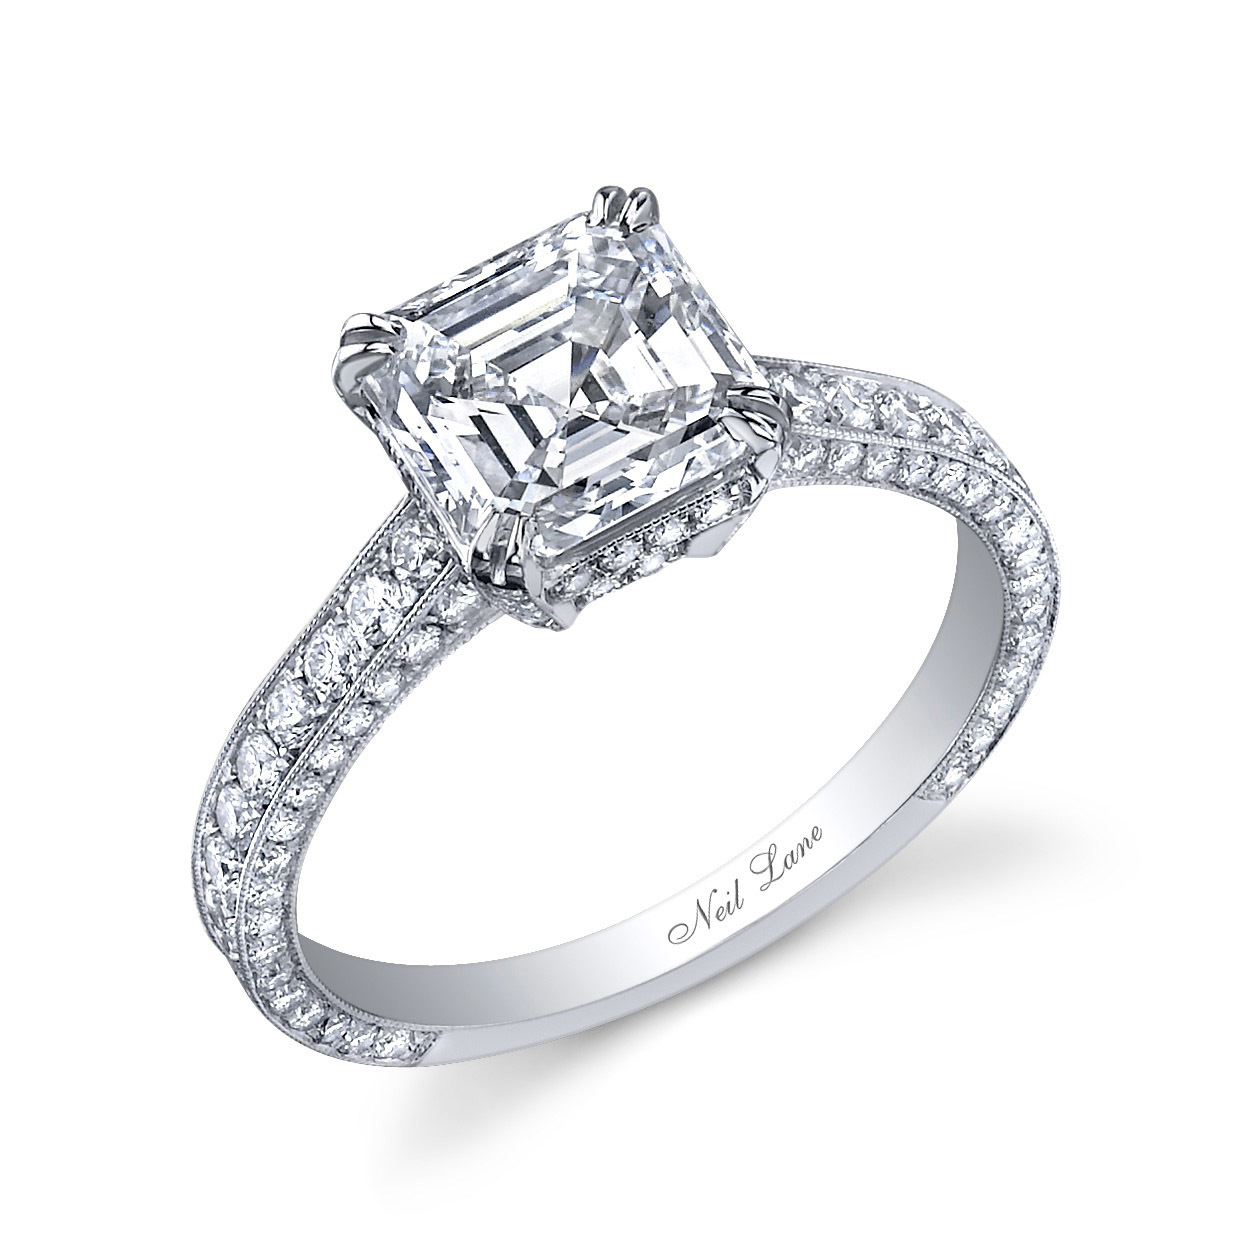 ct mv bridal neil cushion cut lane gold zoom to set diamonds tw zm en kayoutlet diamond hover white kayoutletstore